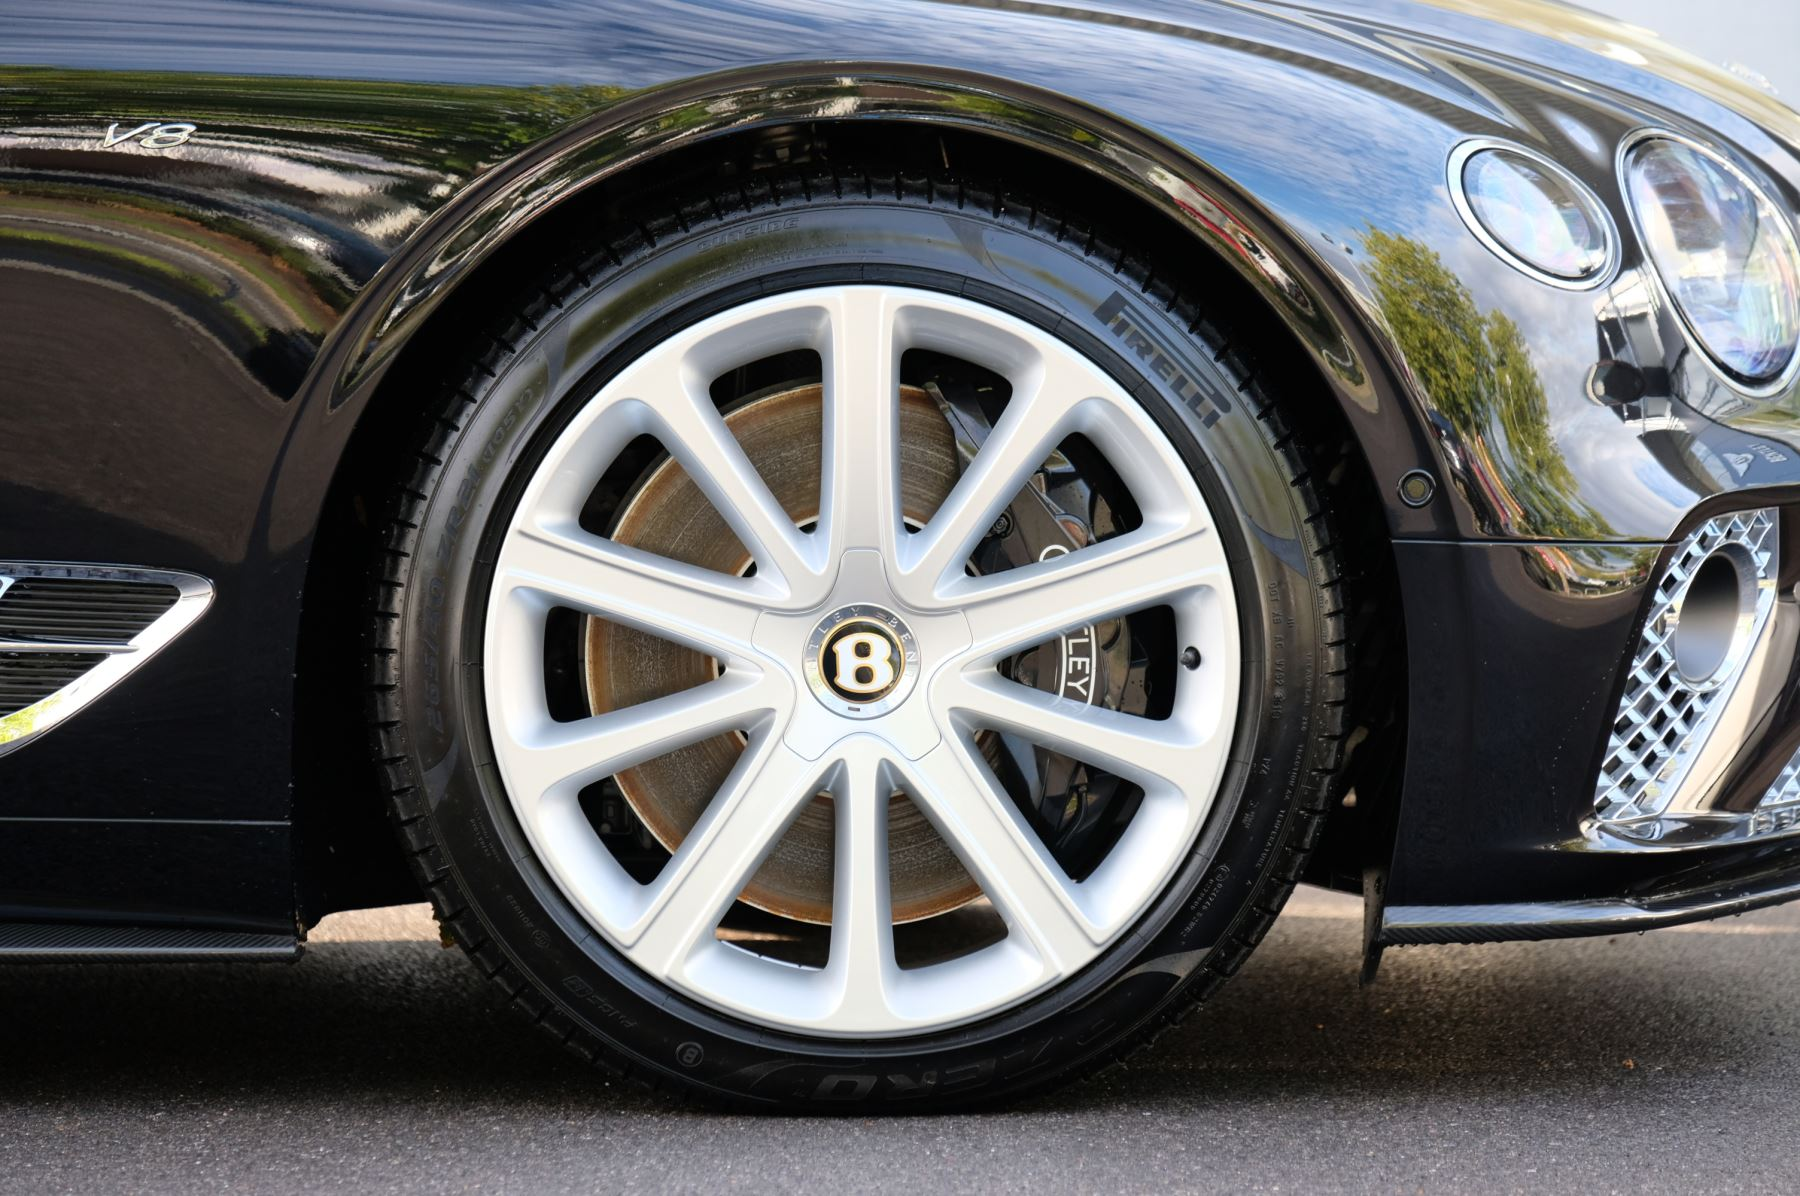 Bentley Continental GT 4.0 V8 2dr Auto [City+Touring Spec] image 6